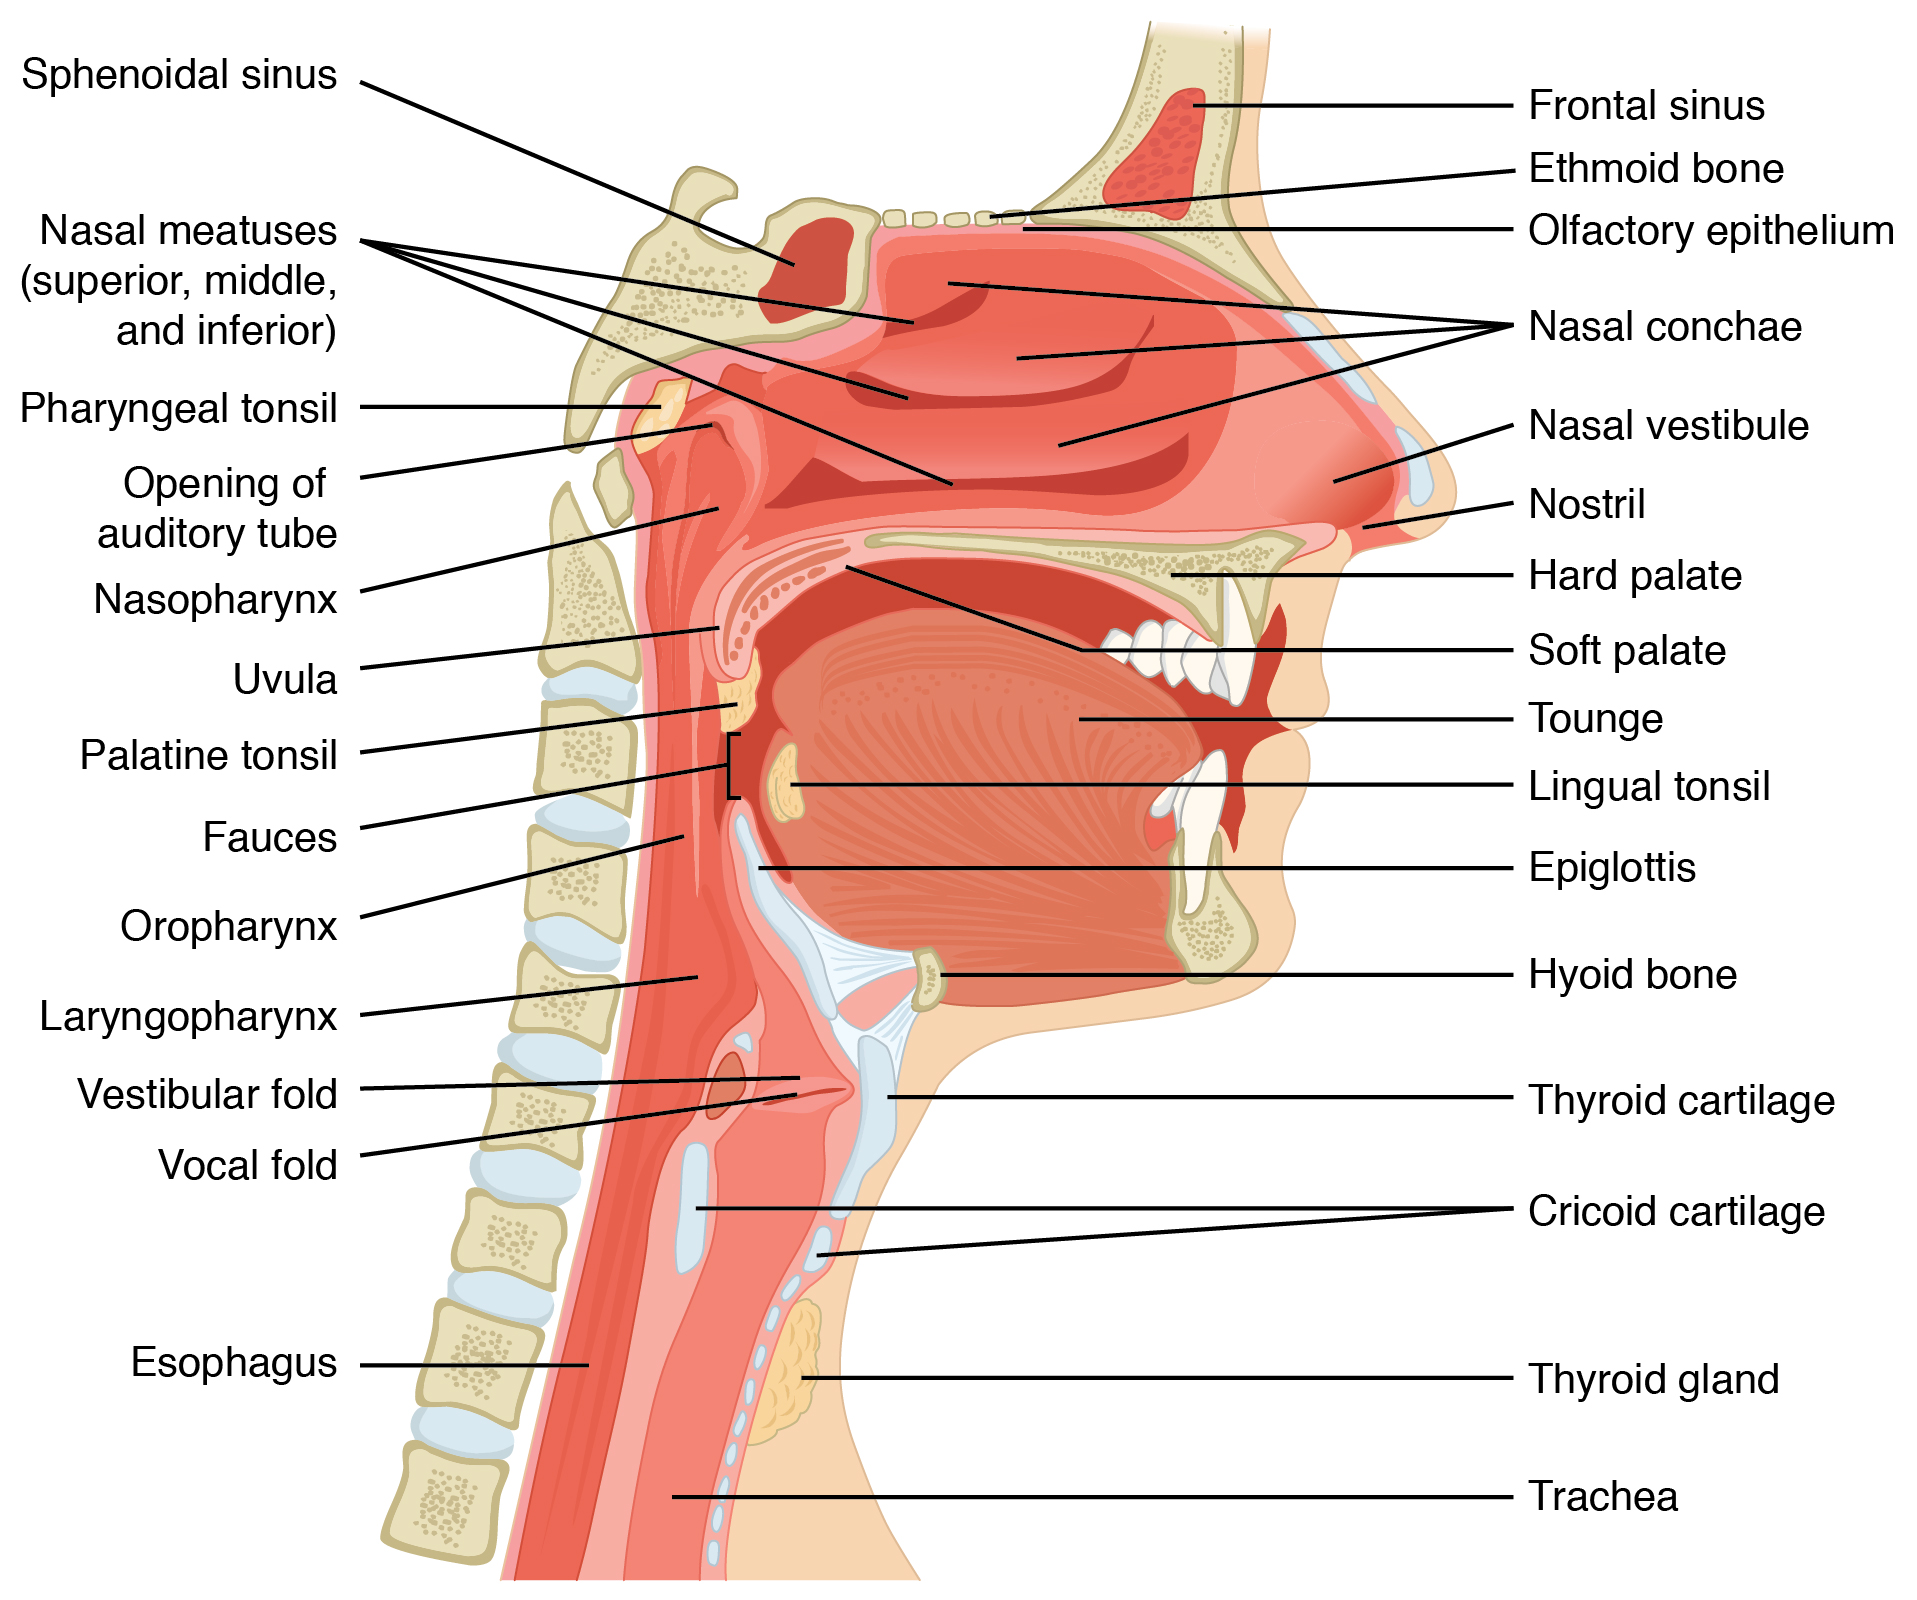 221 Organs And Structures Of The Respiratory System Anatomy Full Body Muscle Diagram Muscles Labeled This Figure Shows A Cross Section View Nose Throat Major Parts